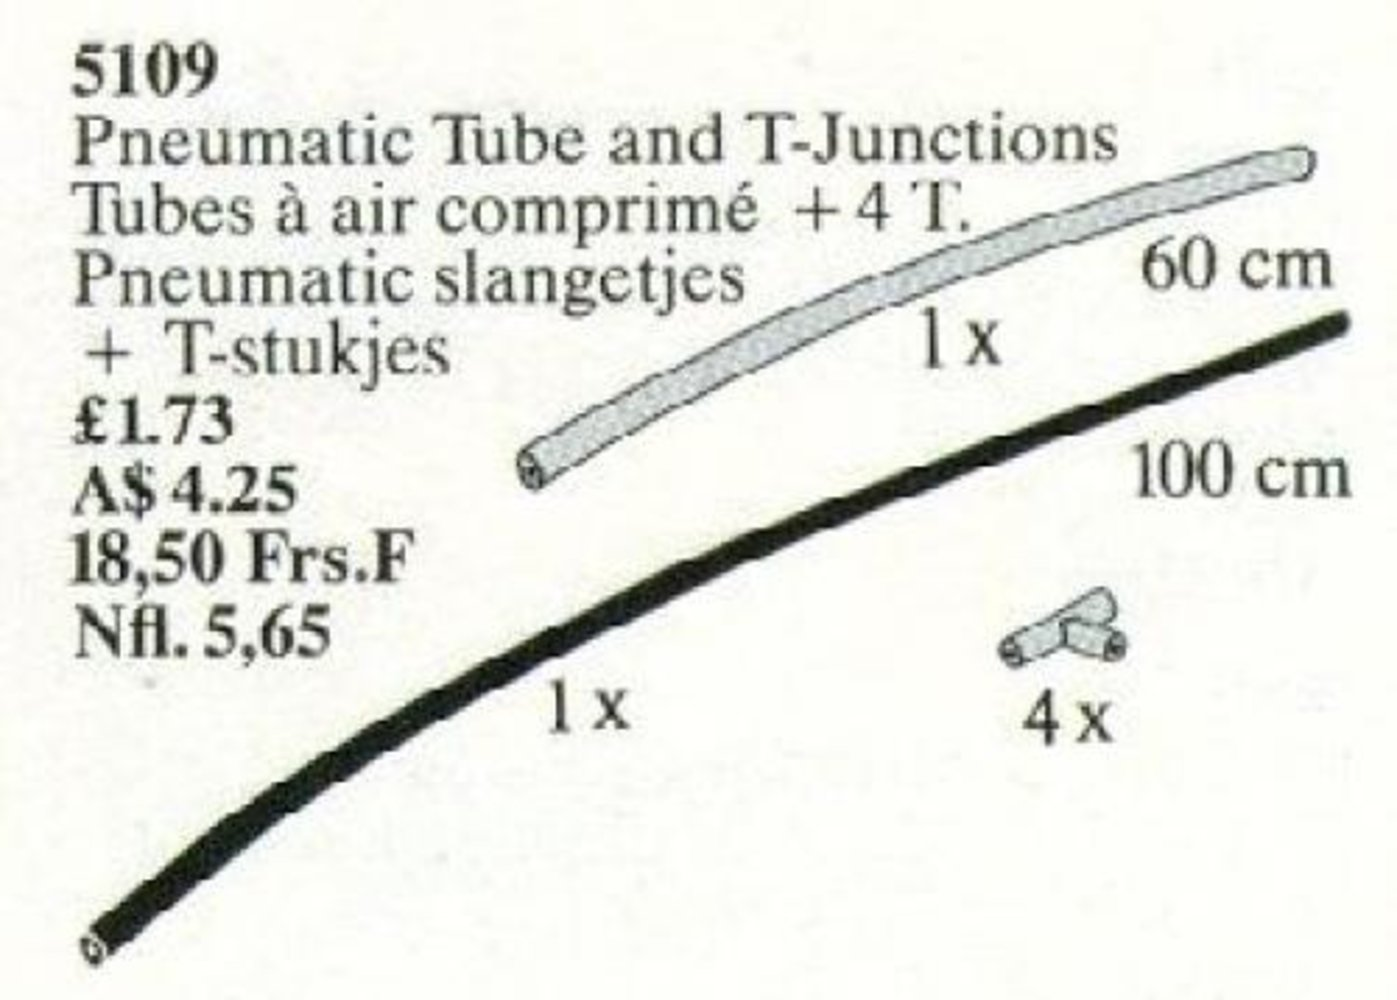 Pneumatic Tubes and Pieces